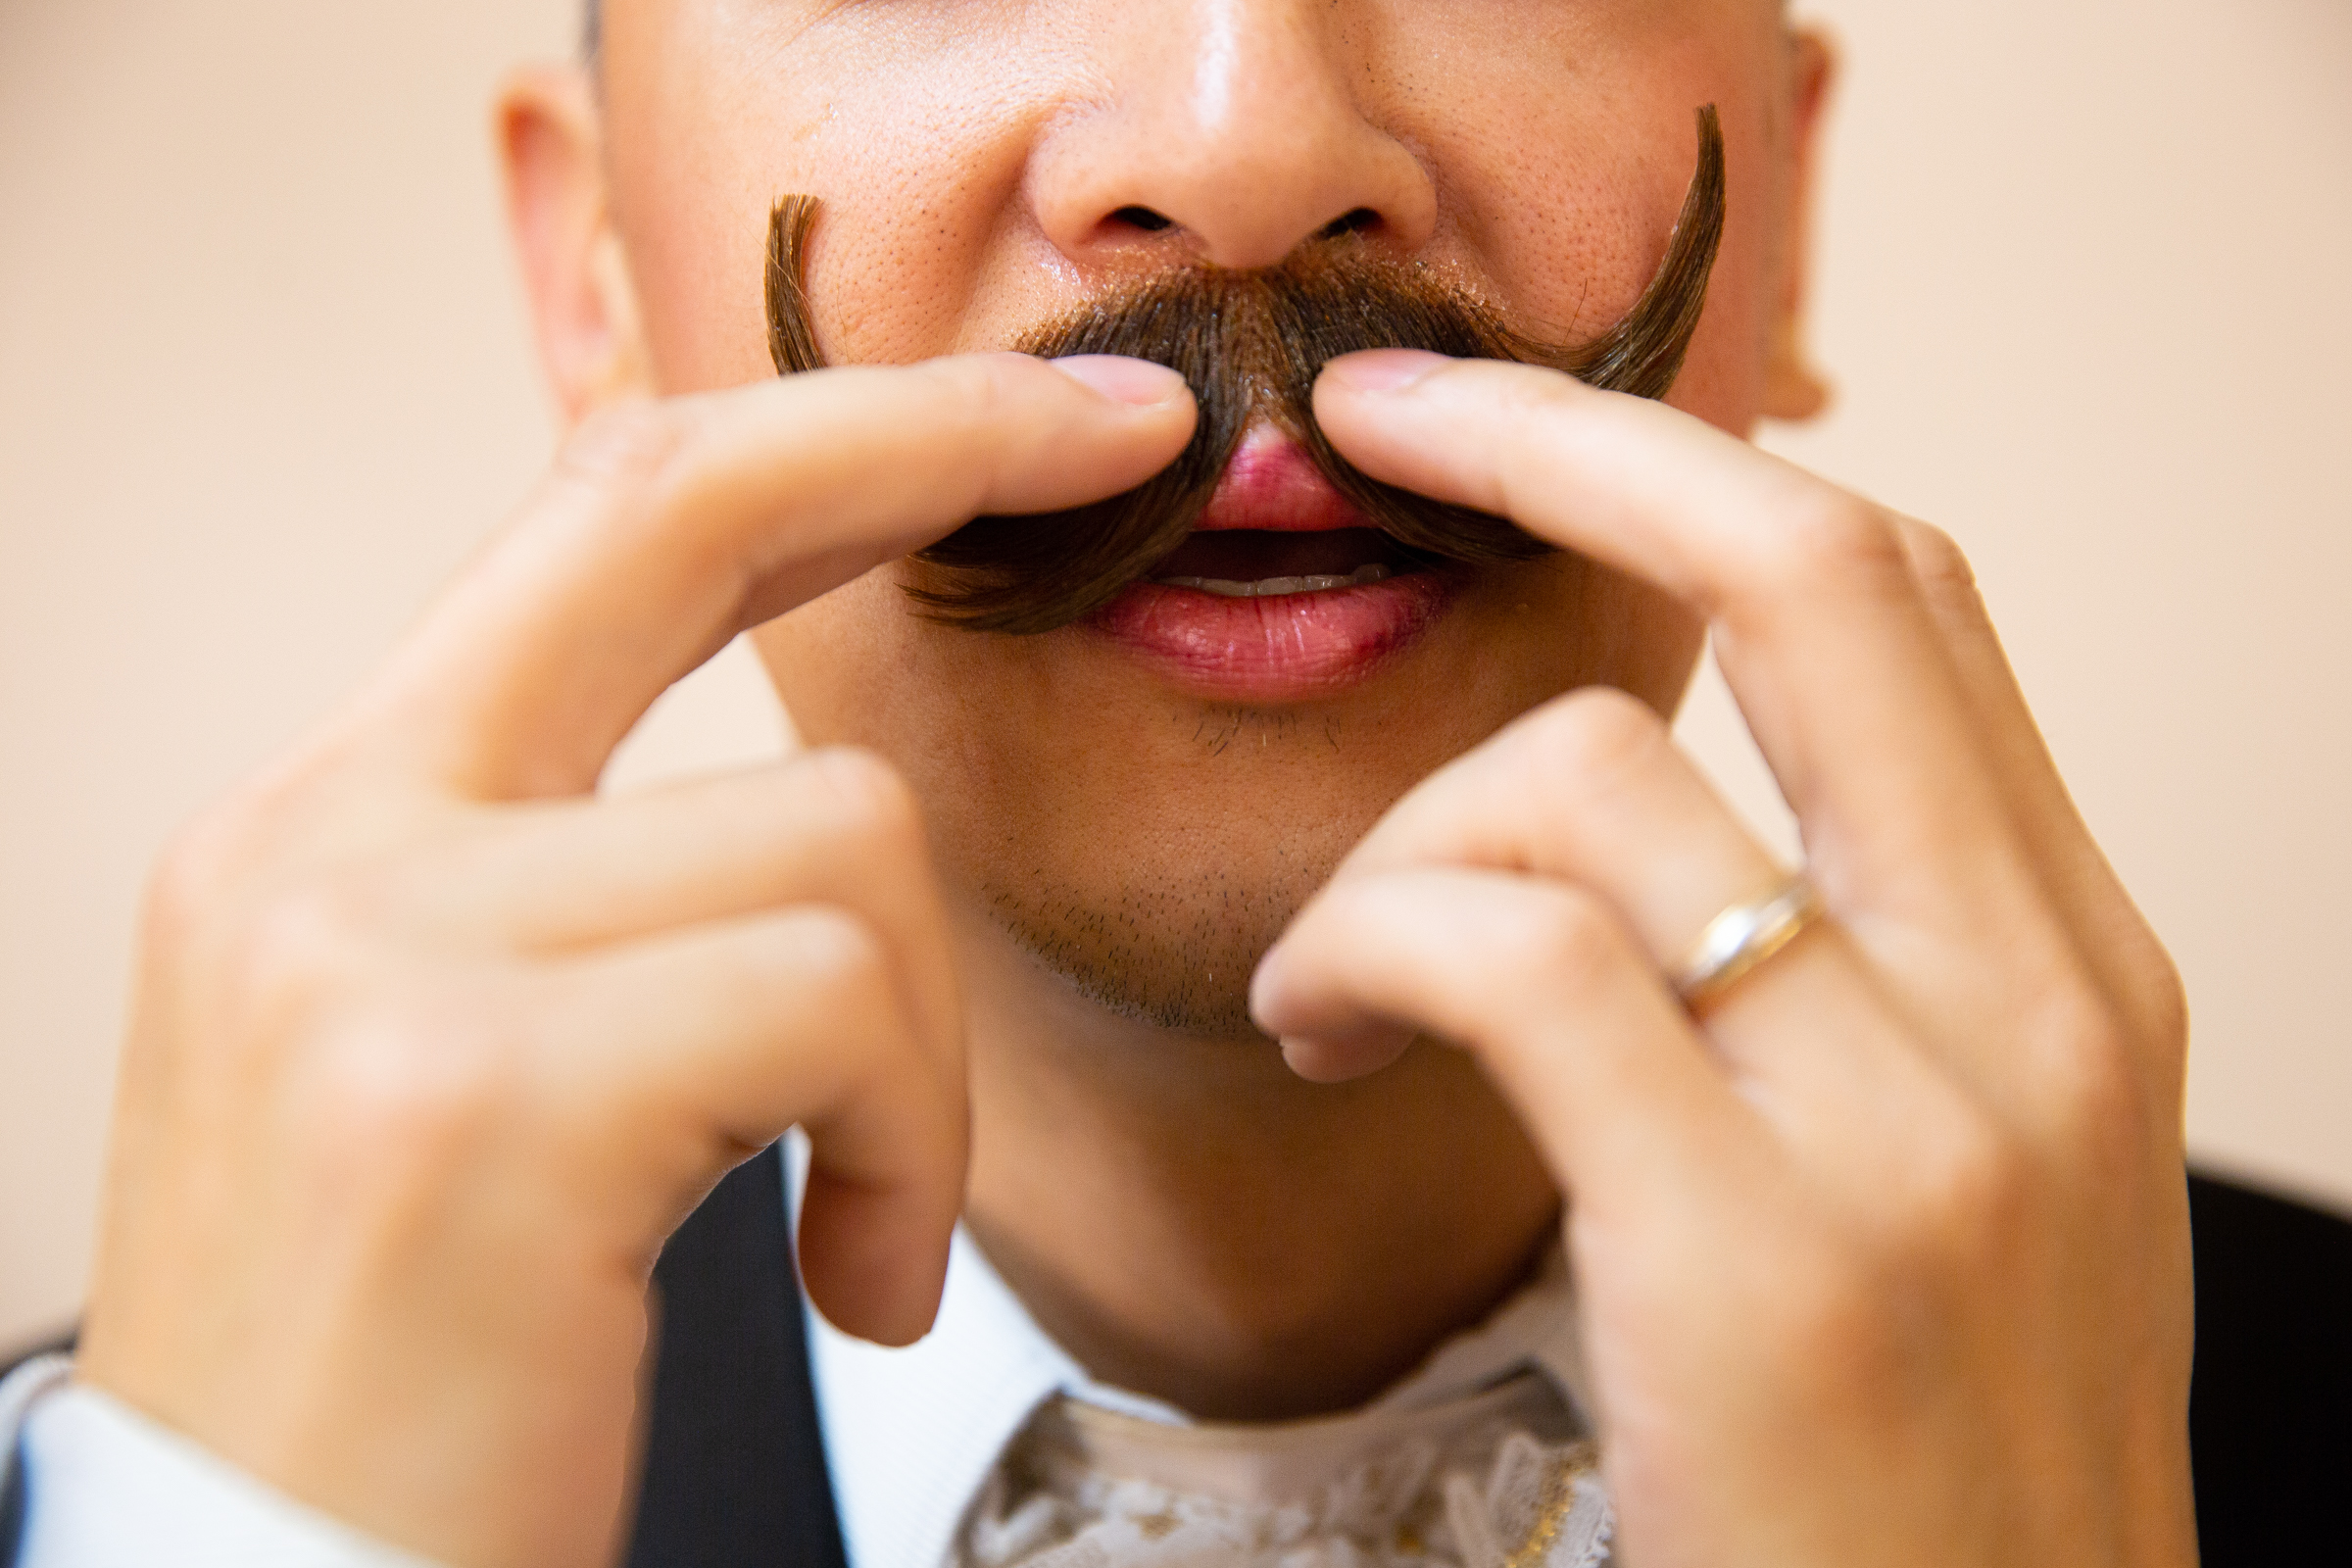 """Ernest Hui holds his fake mustache in place while it dries backstage in the men's dressing room for Western Ballet's production of """"The Nutcracker"""" at the Mountain View Center for the Performing Arts on Dec. 2, 2018."""